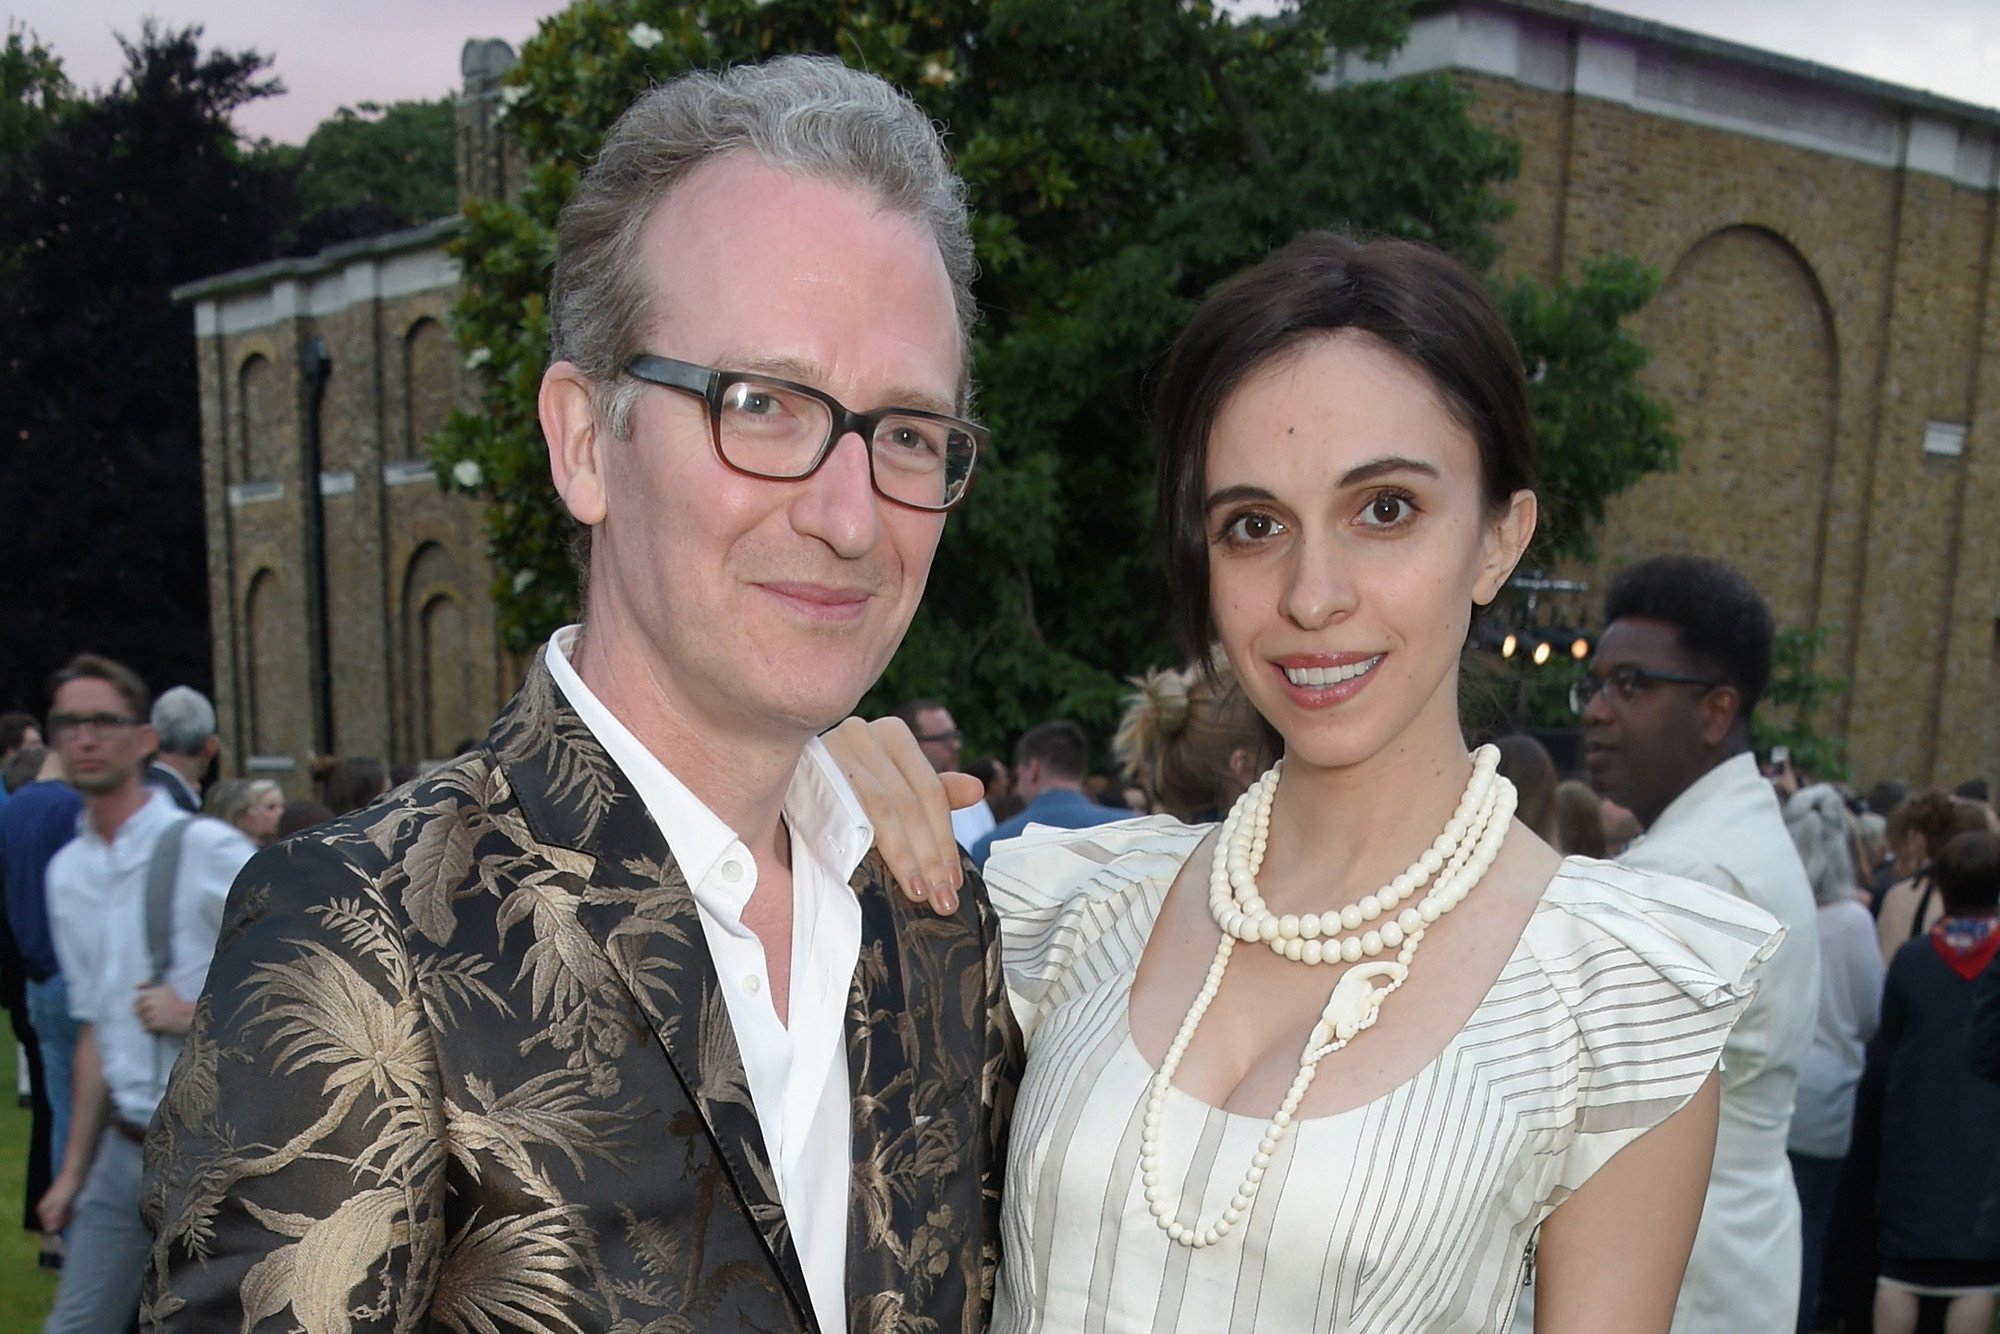 Divorce between Prince Charles' cousin, pregnant wife takes nasty turn